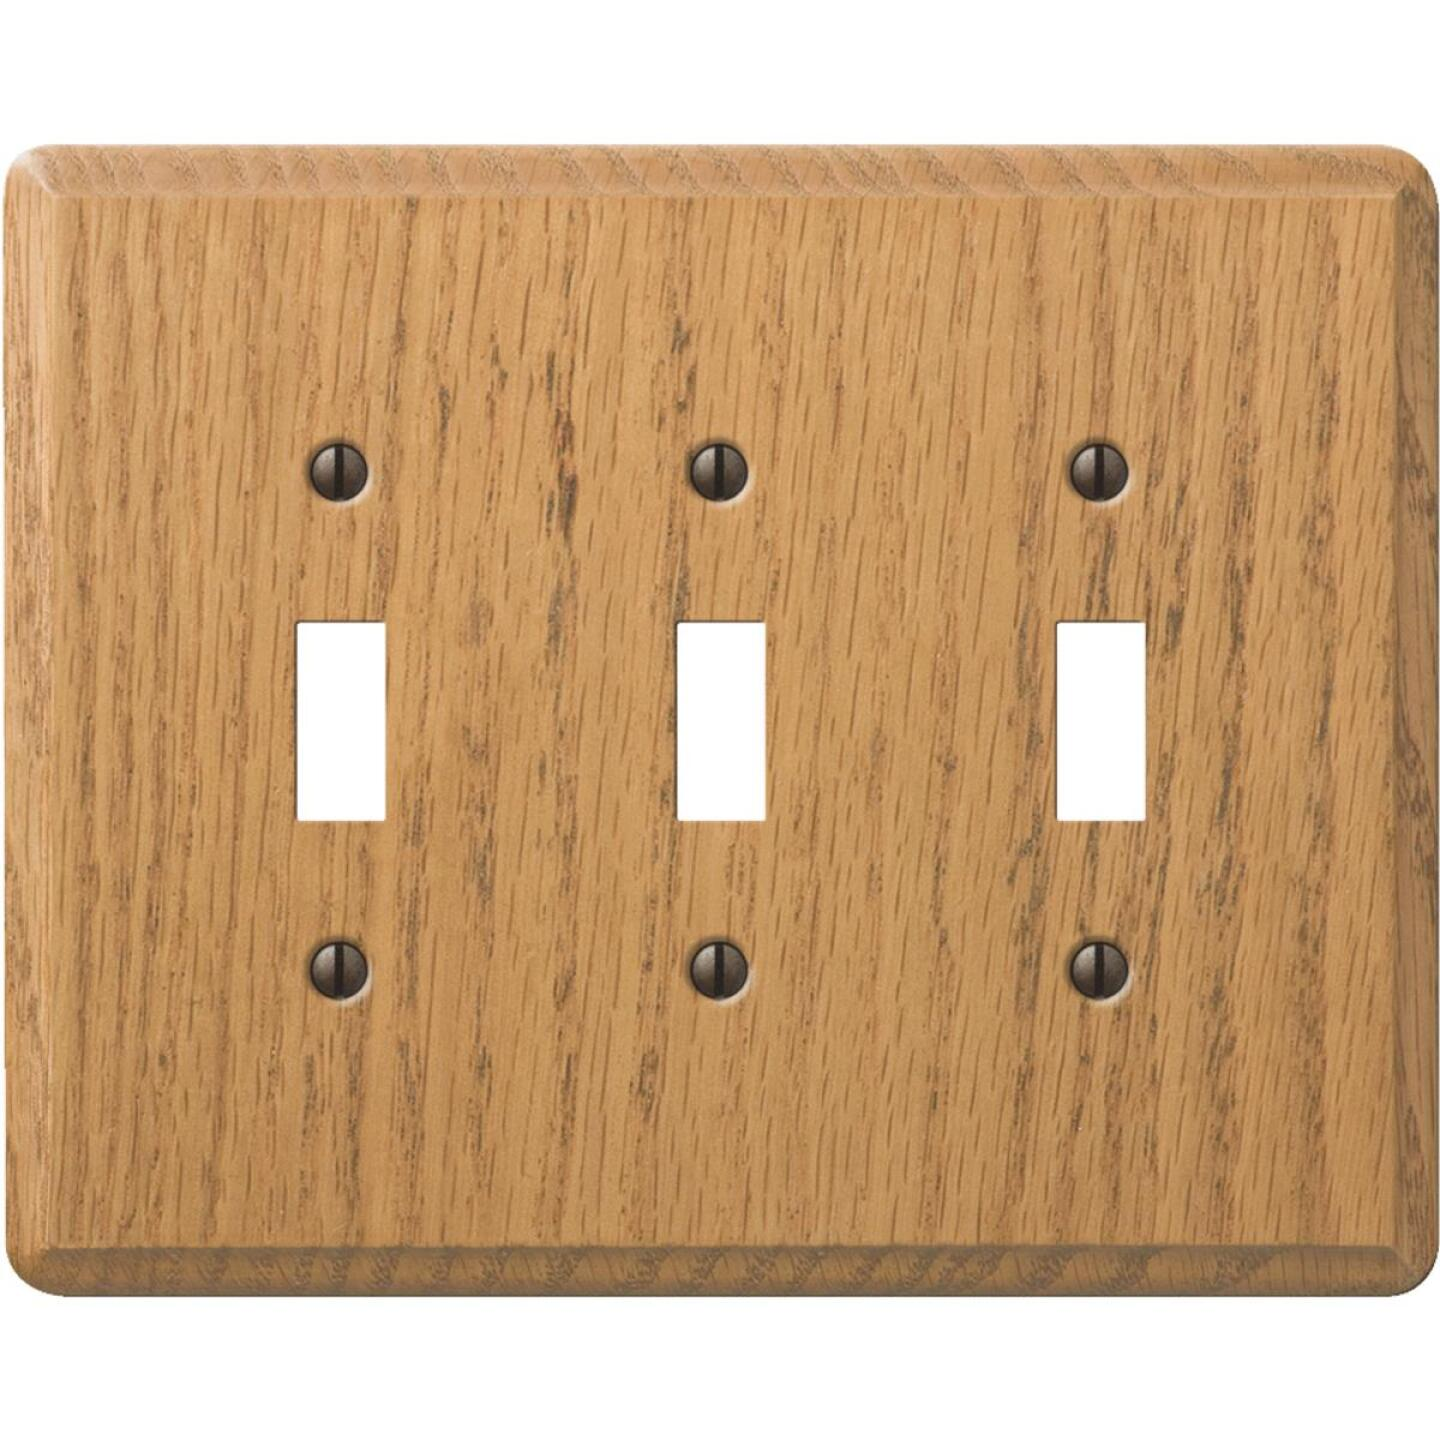 Amerelle 3-Gang Solid Oak Toggle Switch Wall Plate, Light Oak Image 1